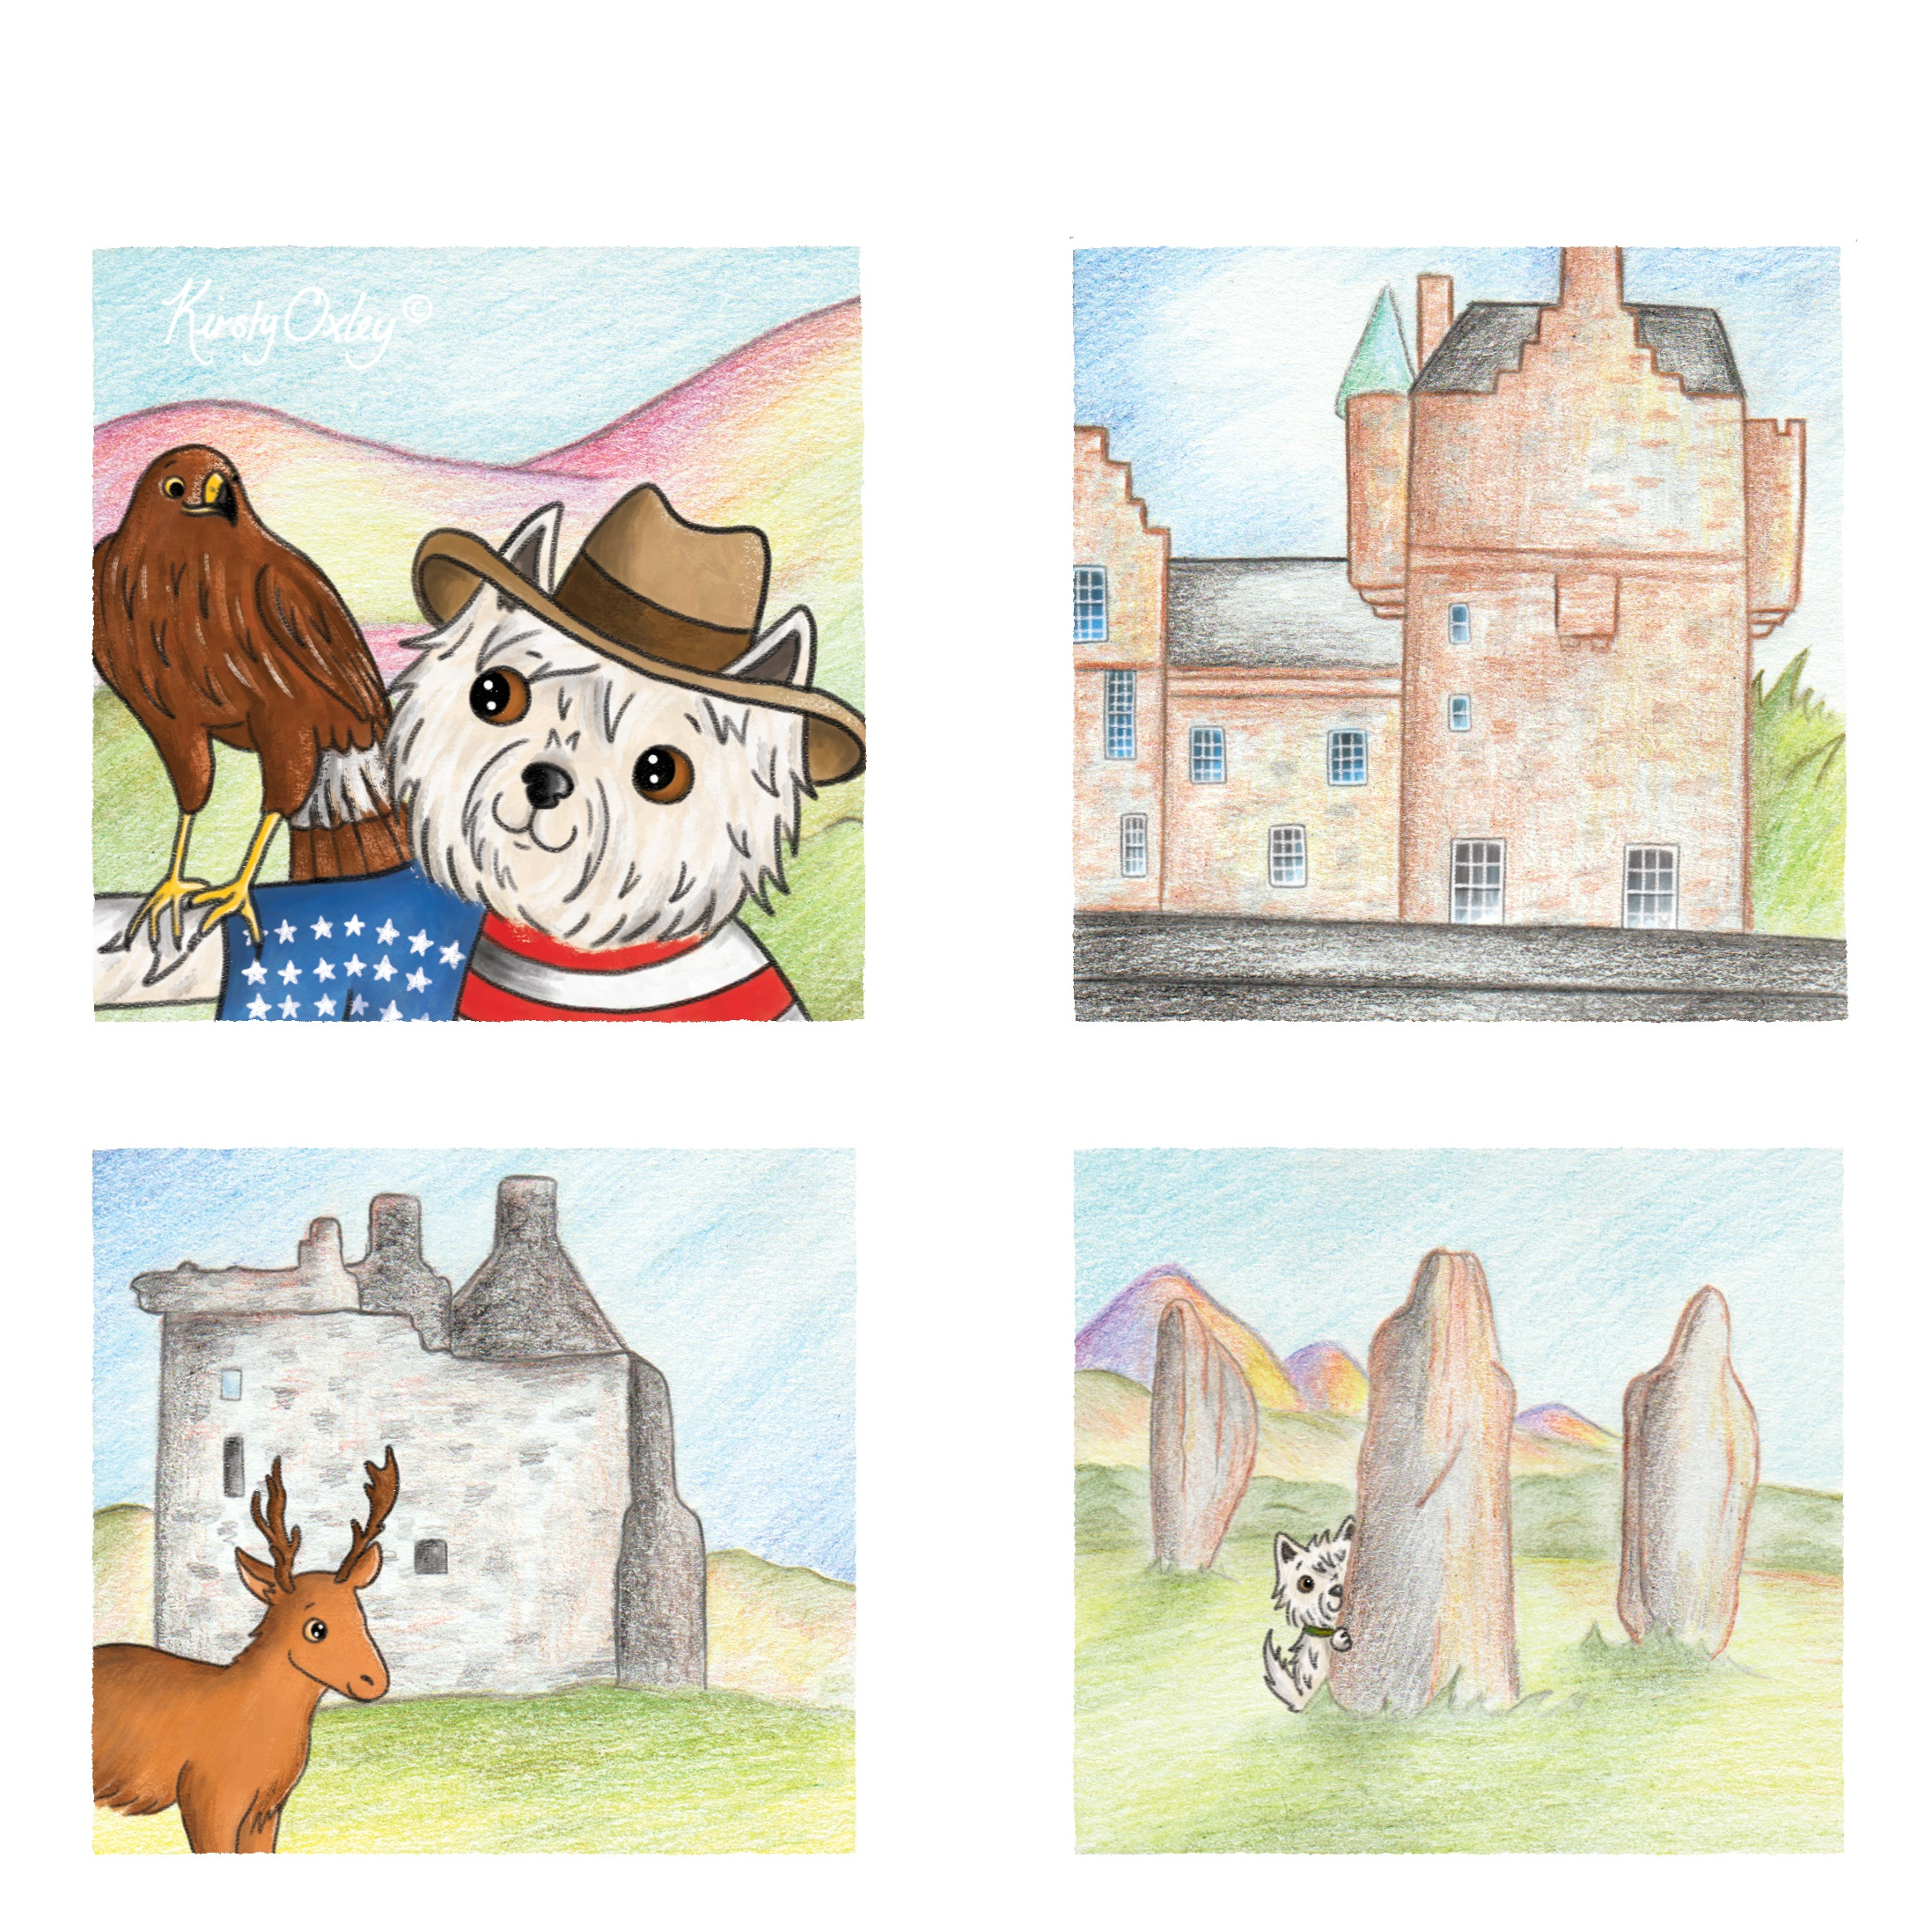 Island_Tour_Kirsty_Oxley_Illustration_The_Westie_Fest_Corries_Capers 2.jpg